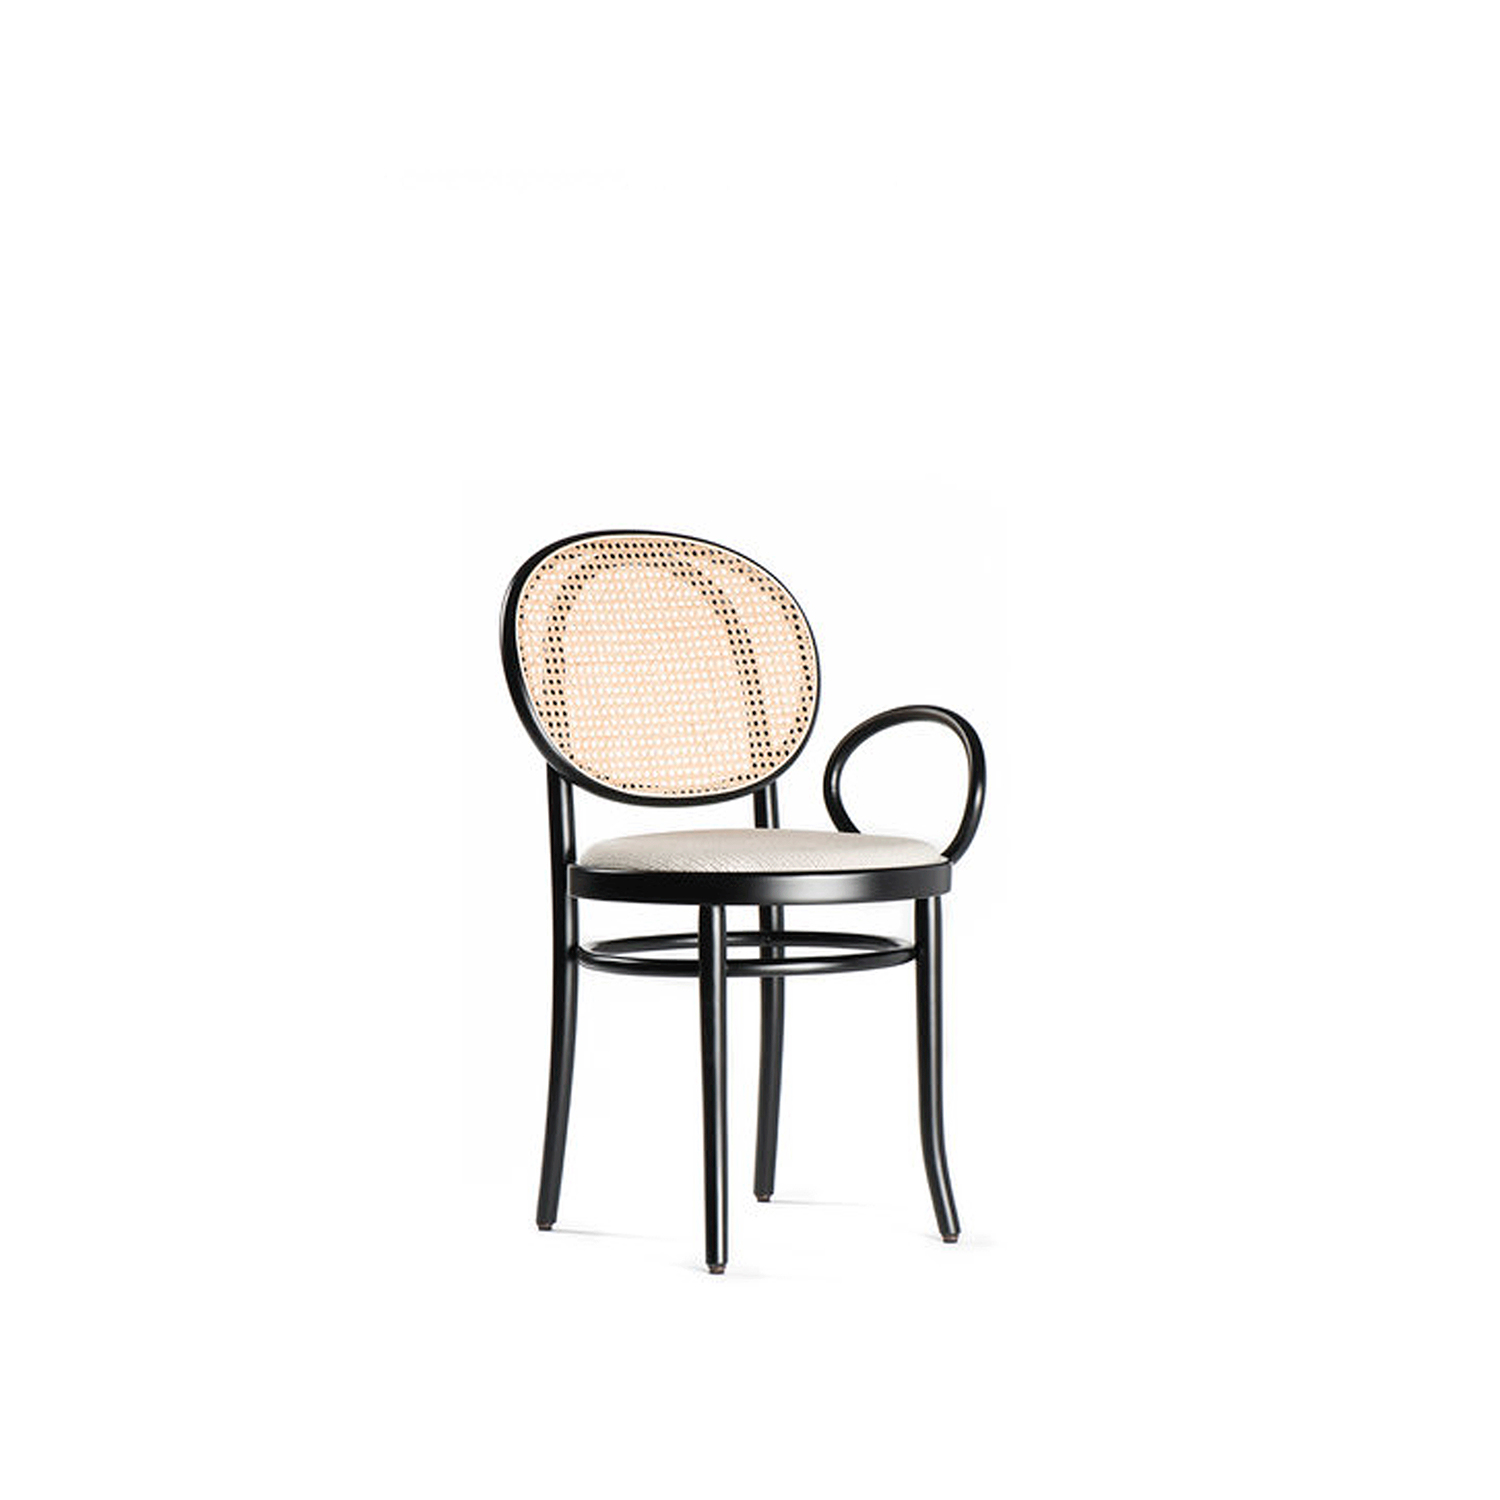 No.0 Chair - Combining the contemporary and playful aesthetic of the Swedish duo with the century-old tradition of Viennese furniture, this armchair boasts a steam-bent beechwood frame finished with black lacquer that features a single round armrest on one side. The frame envelops the round seat with white fabric upholstery and the backrest with stunning Viennese straw.  | Matter of Stuff